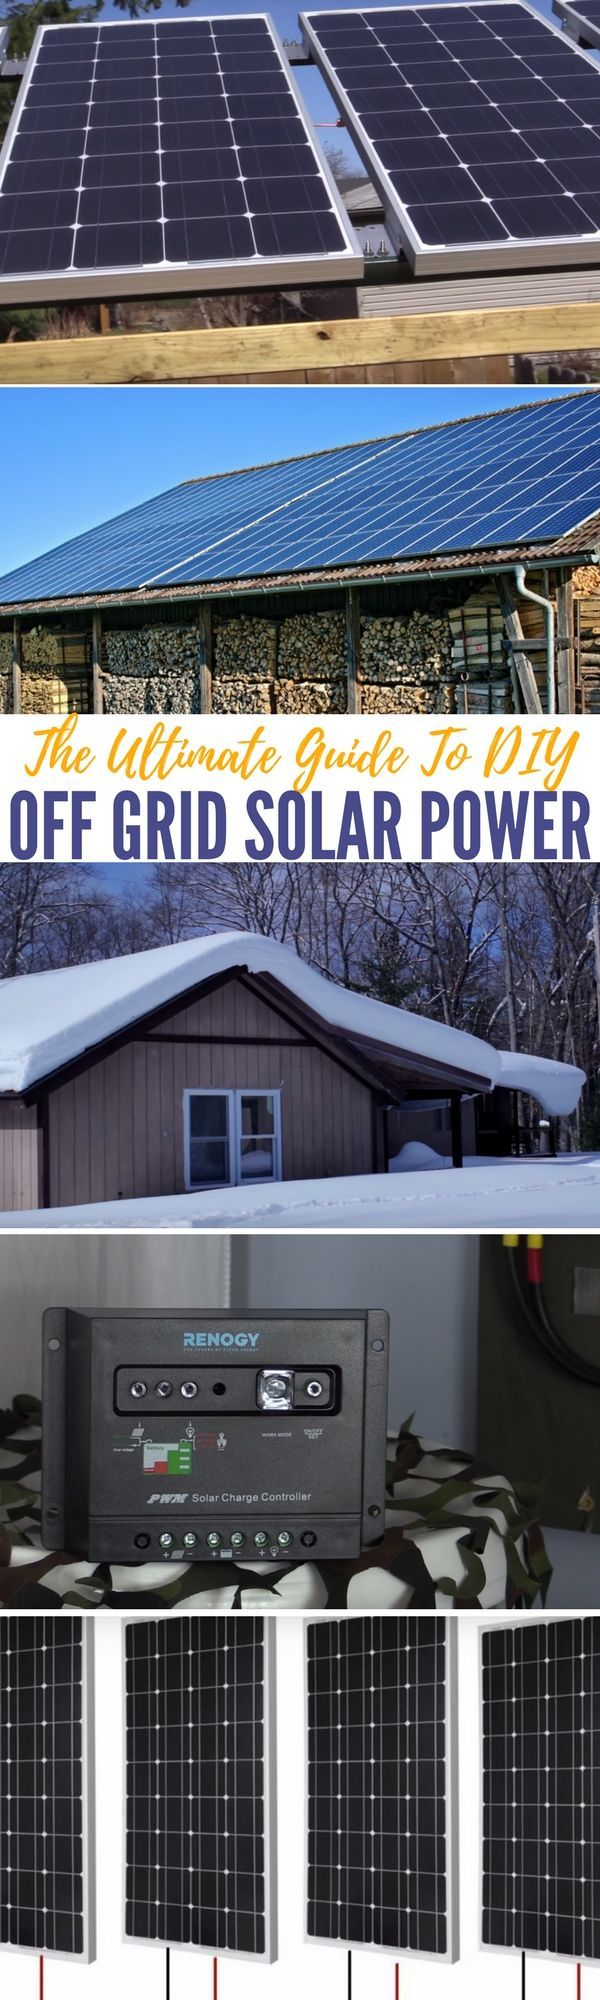 11 Best Solar Panels Images On Pinterest Alternative Energy Tips When Adding Circuit Breaker For Diy Your Home The Ultimate Guide To Off Grid Power